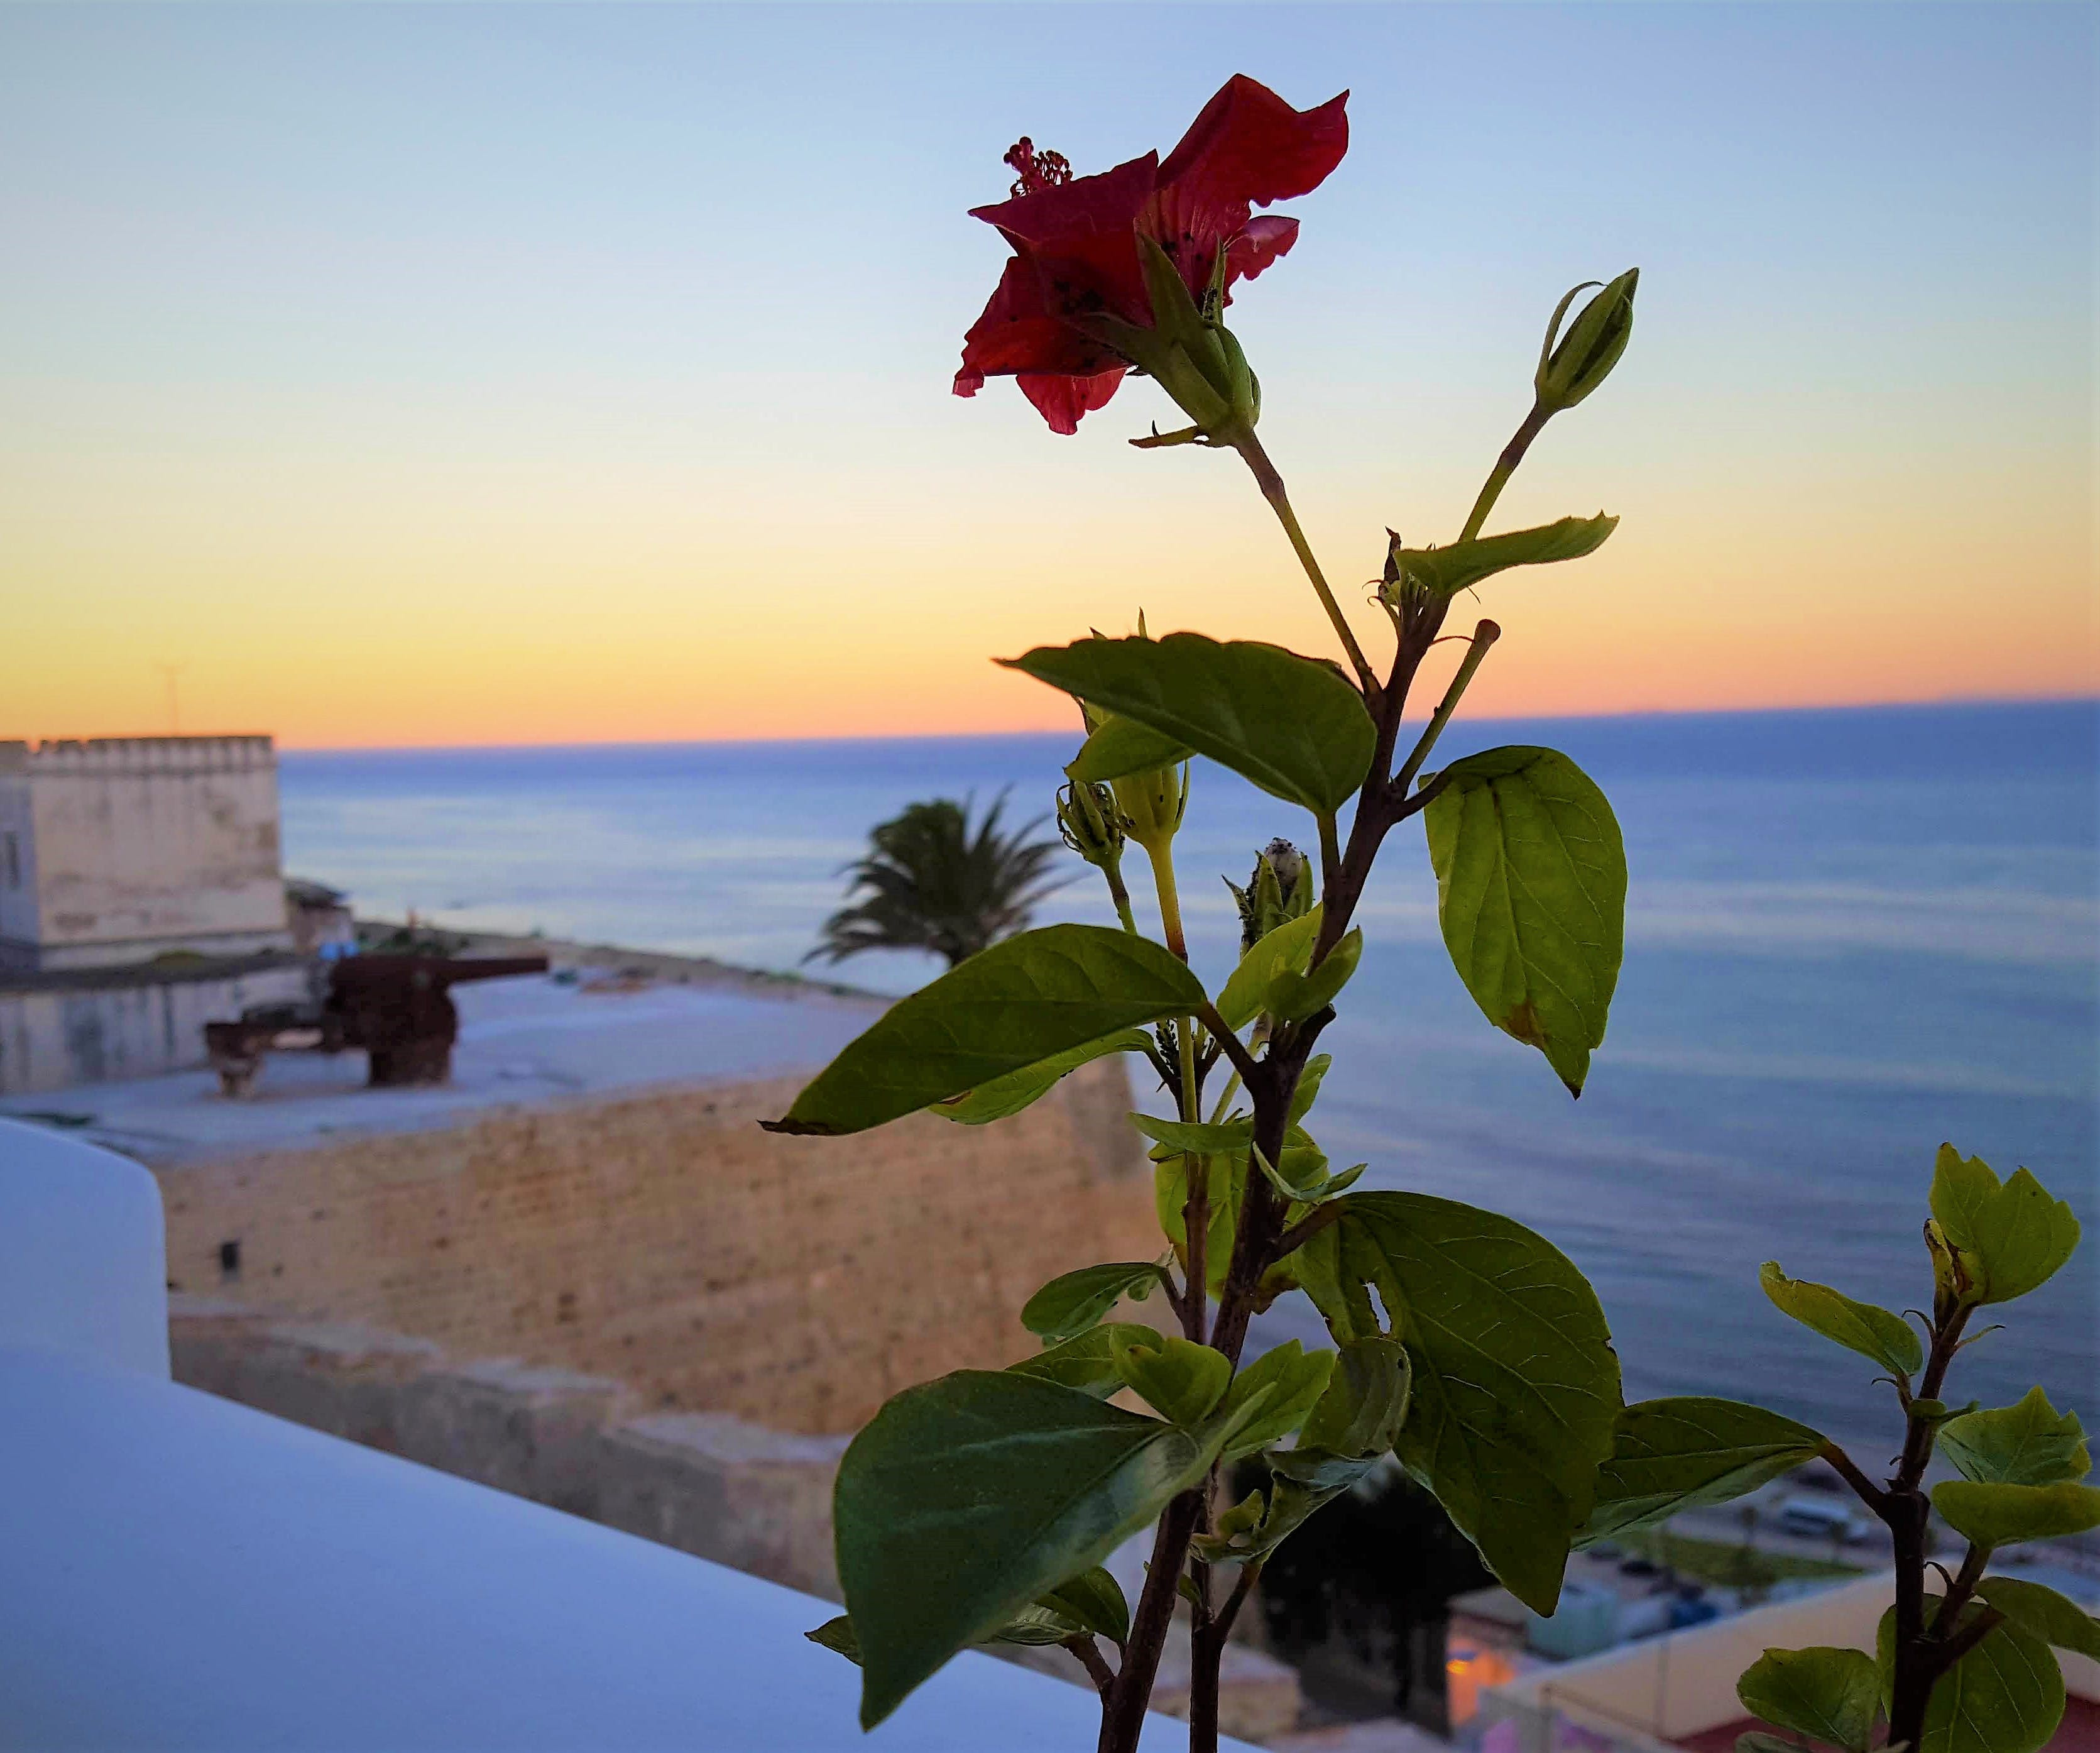 Free stock photo of flower, kasbah, mediterranean sea, outdoorchallenge